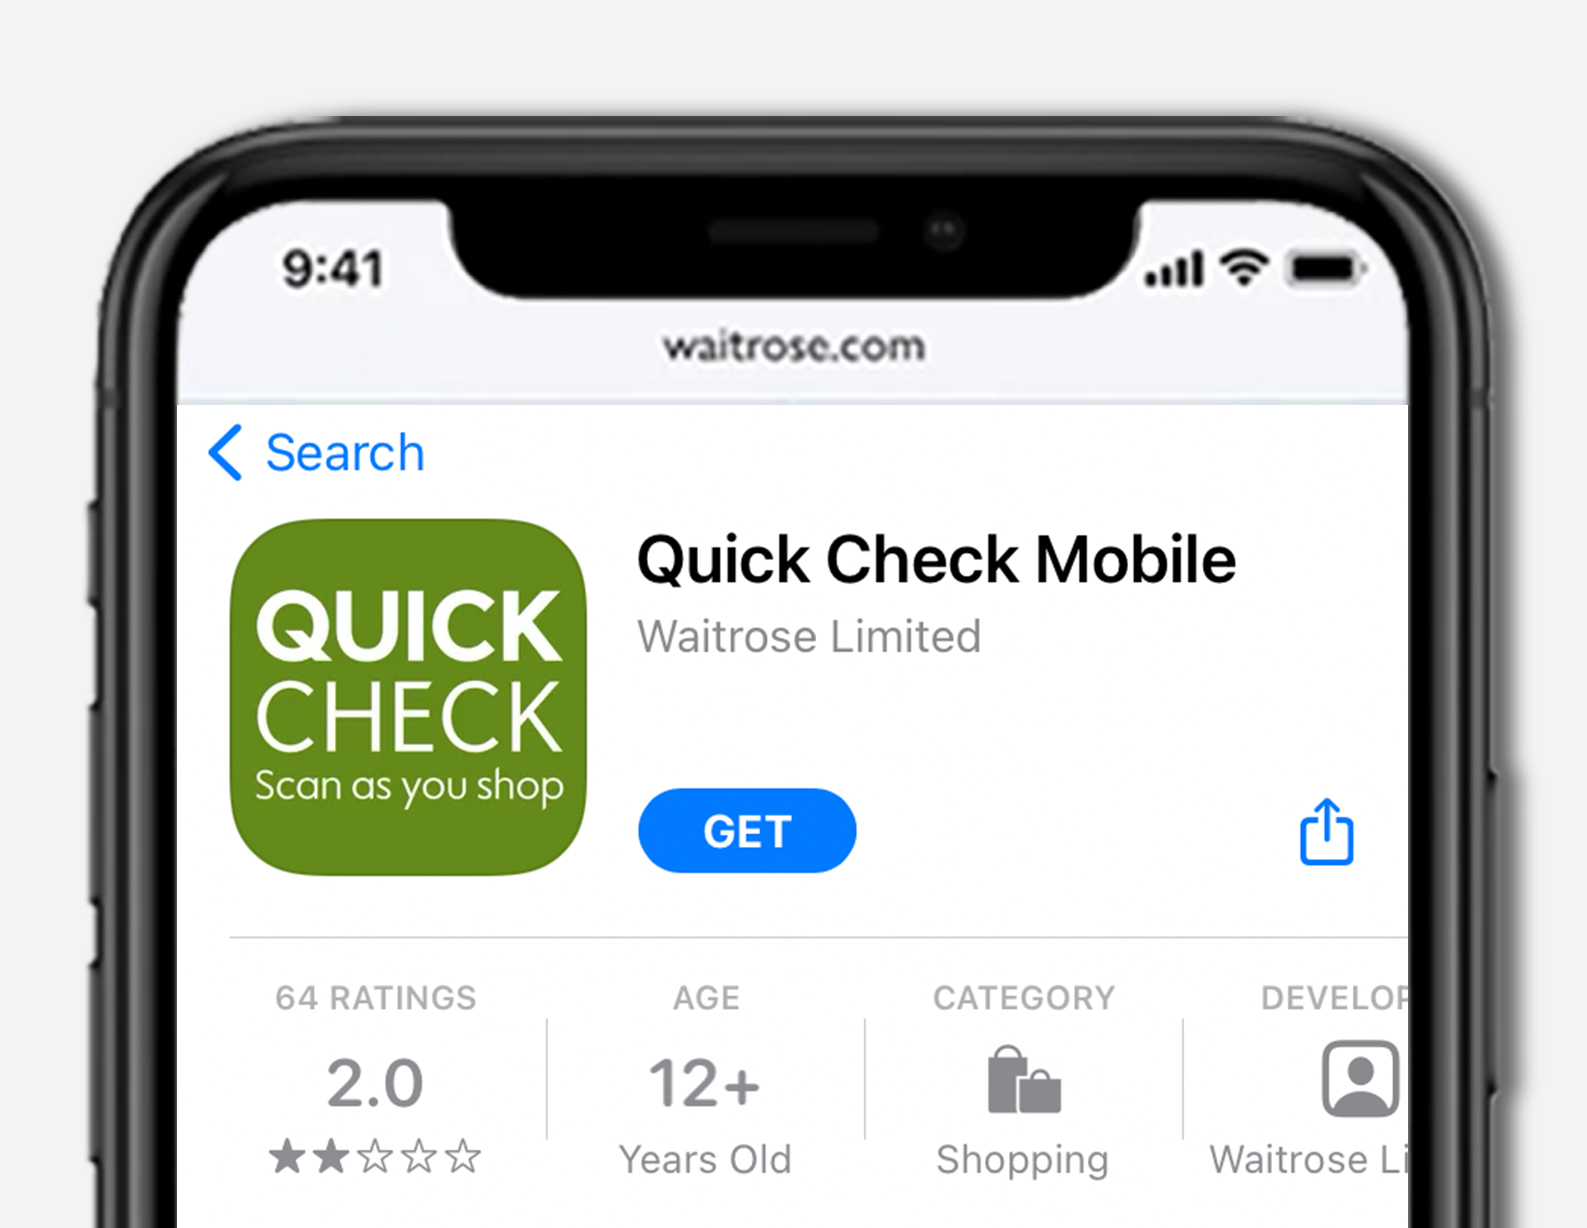 image of quick check mobile phone app